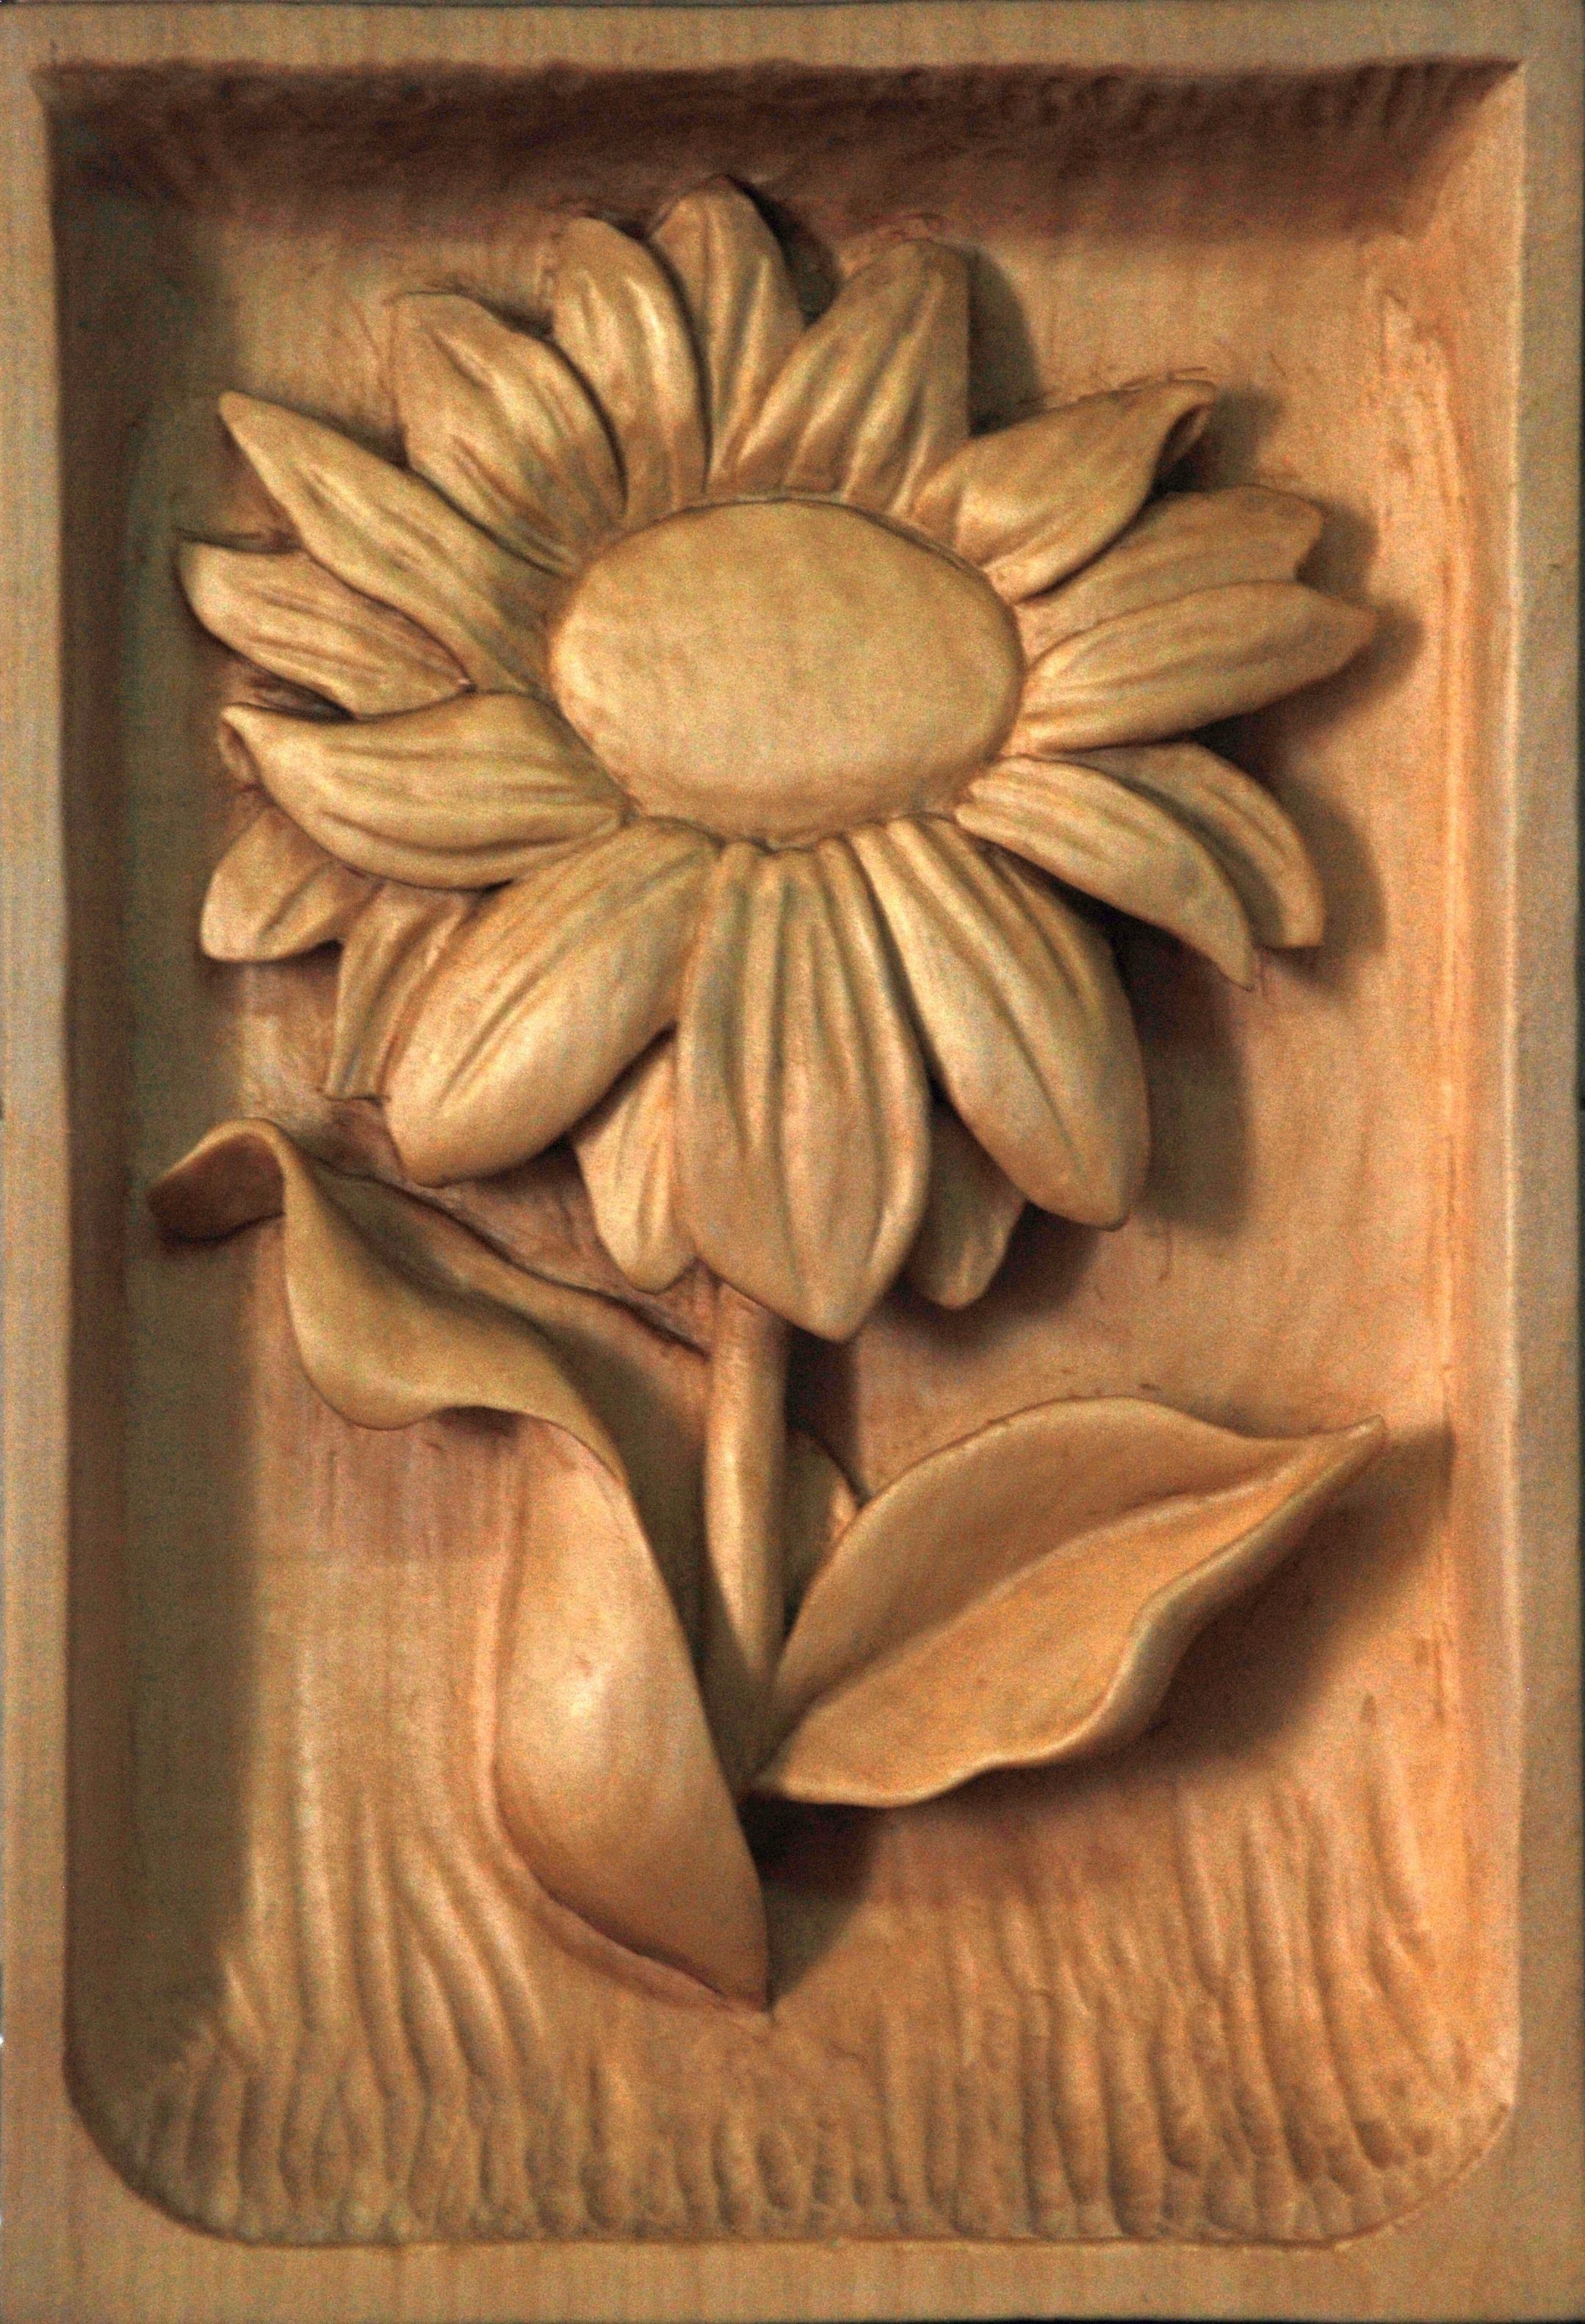 Wood profit woodworking image result for relief carving patterns